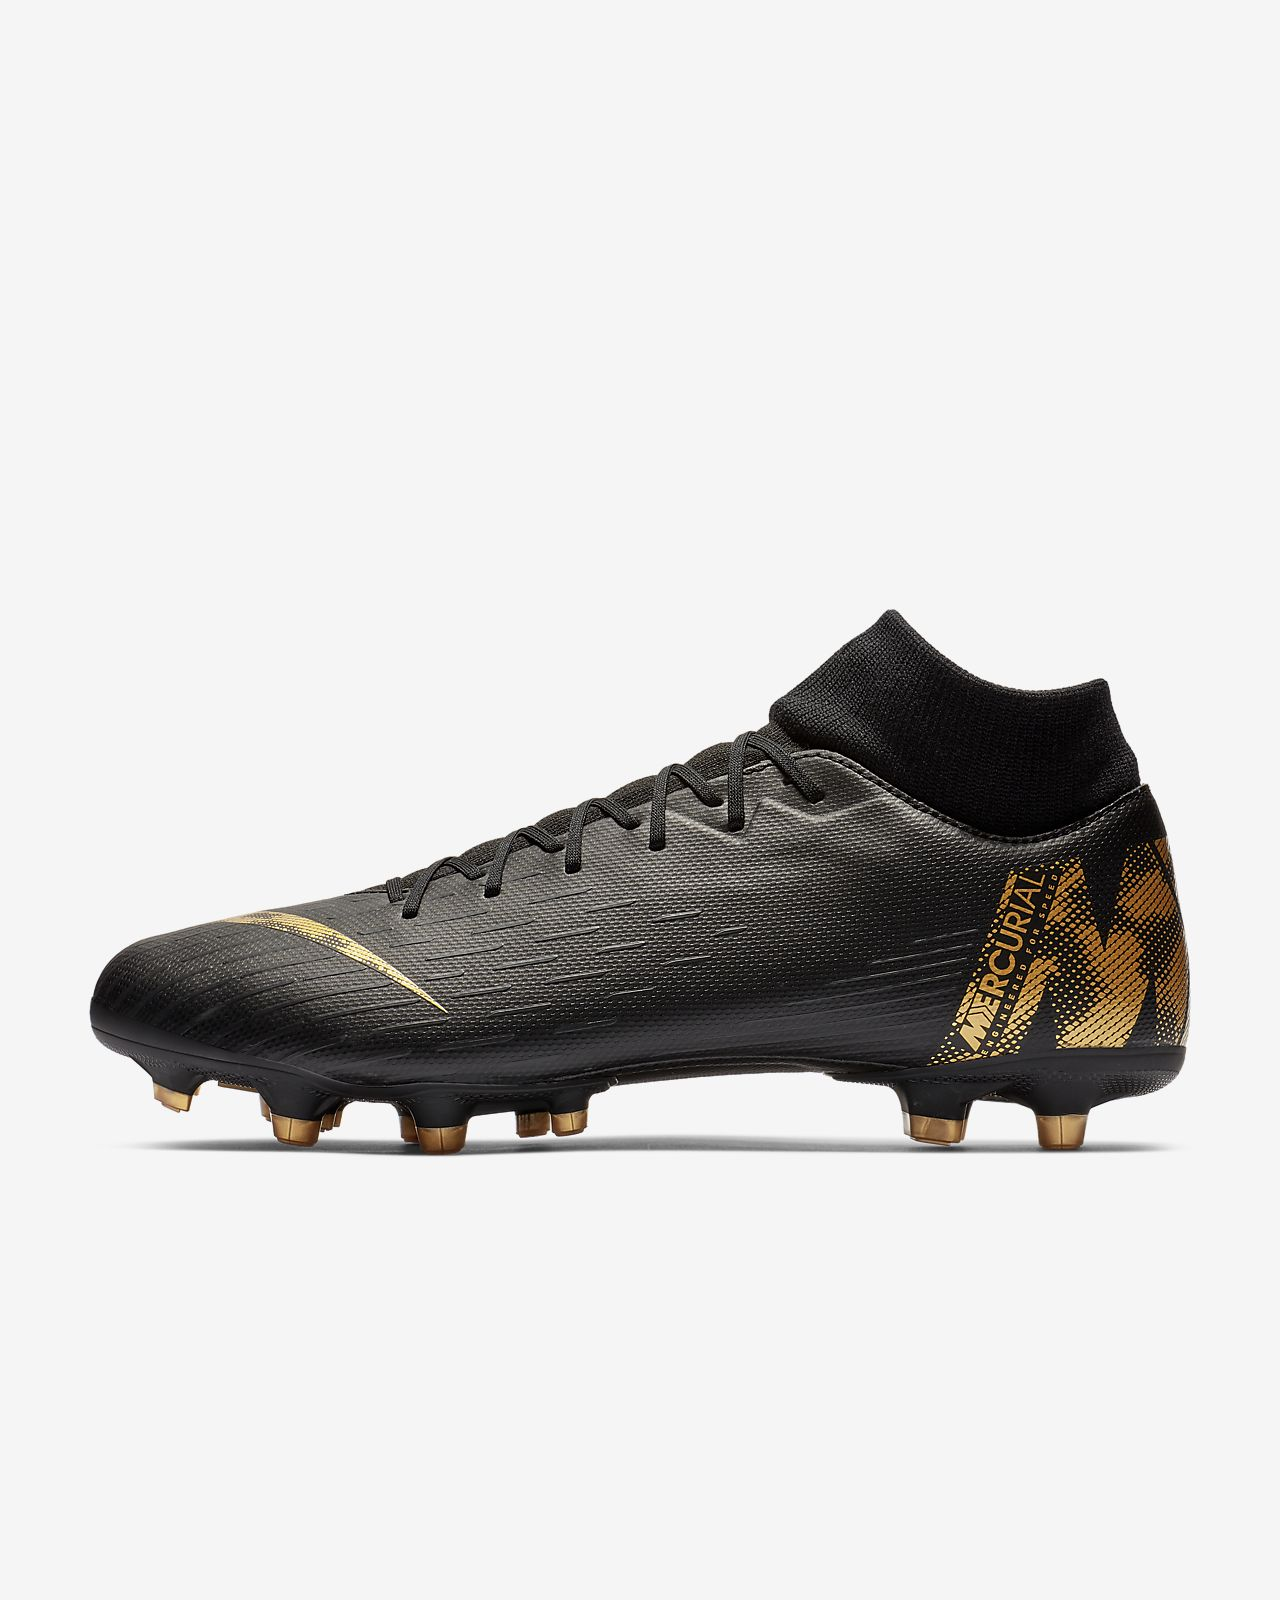 d1a4c0b36 Nike Mercurial Superfly 6 Academy MG Multi-Ground Soccer Cleat. Nike.com